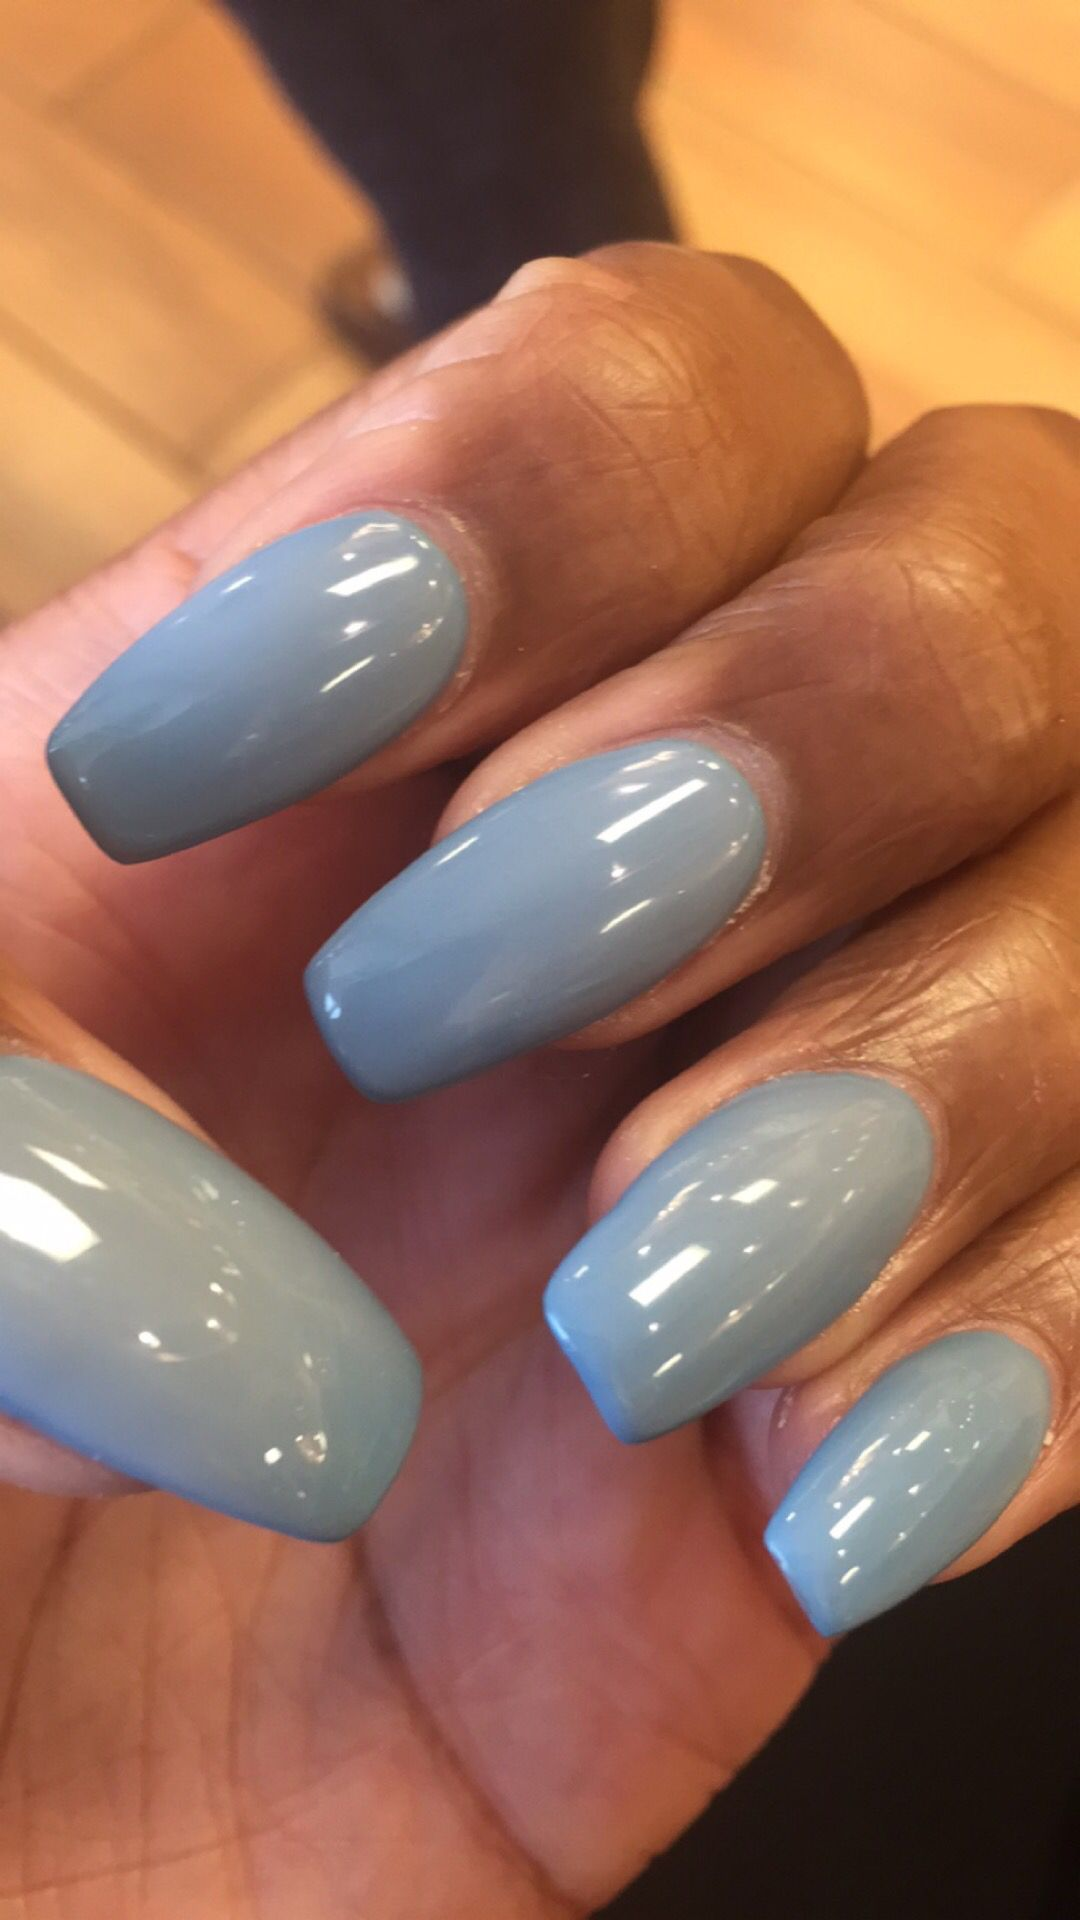 Ombré nails color is glass door by kiara gel | Nailed it | Pinterest